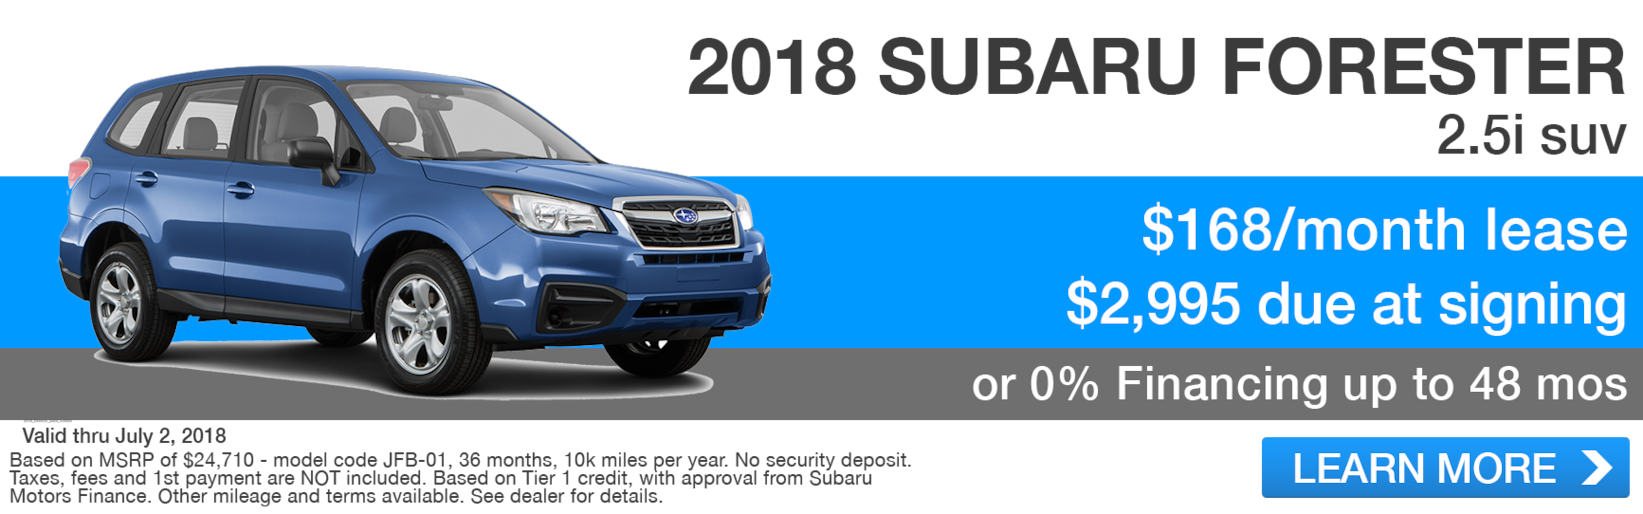 Huebner Chevrolet Subaru | New Chevrolet, Subaru dealership in ...